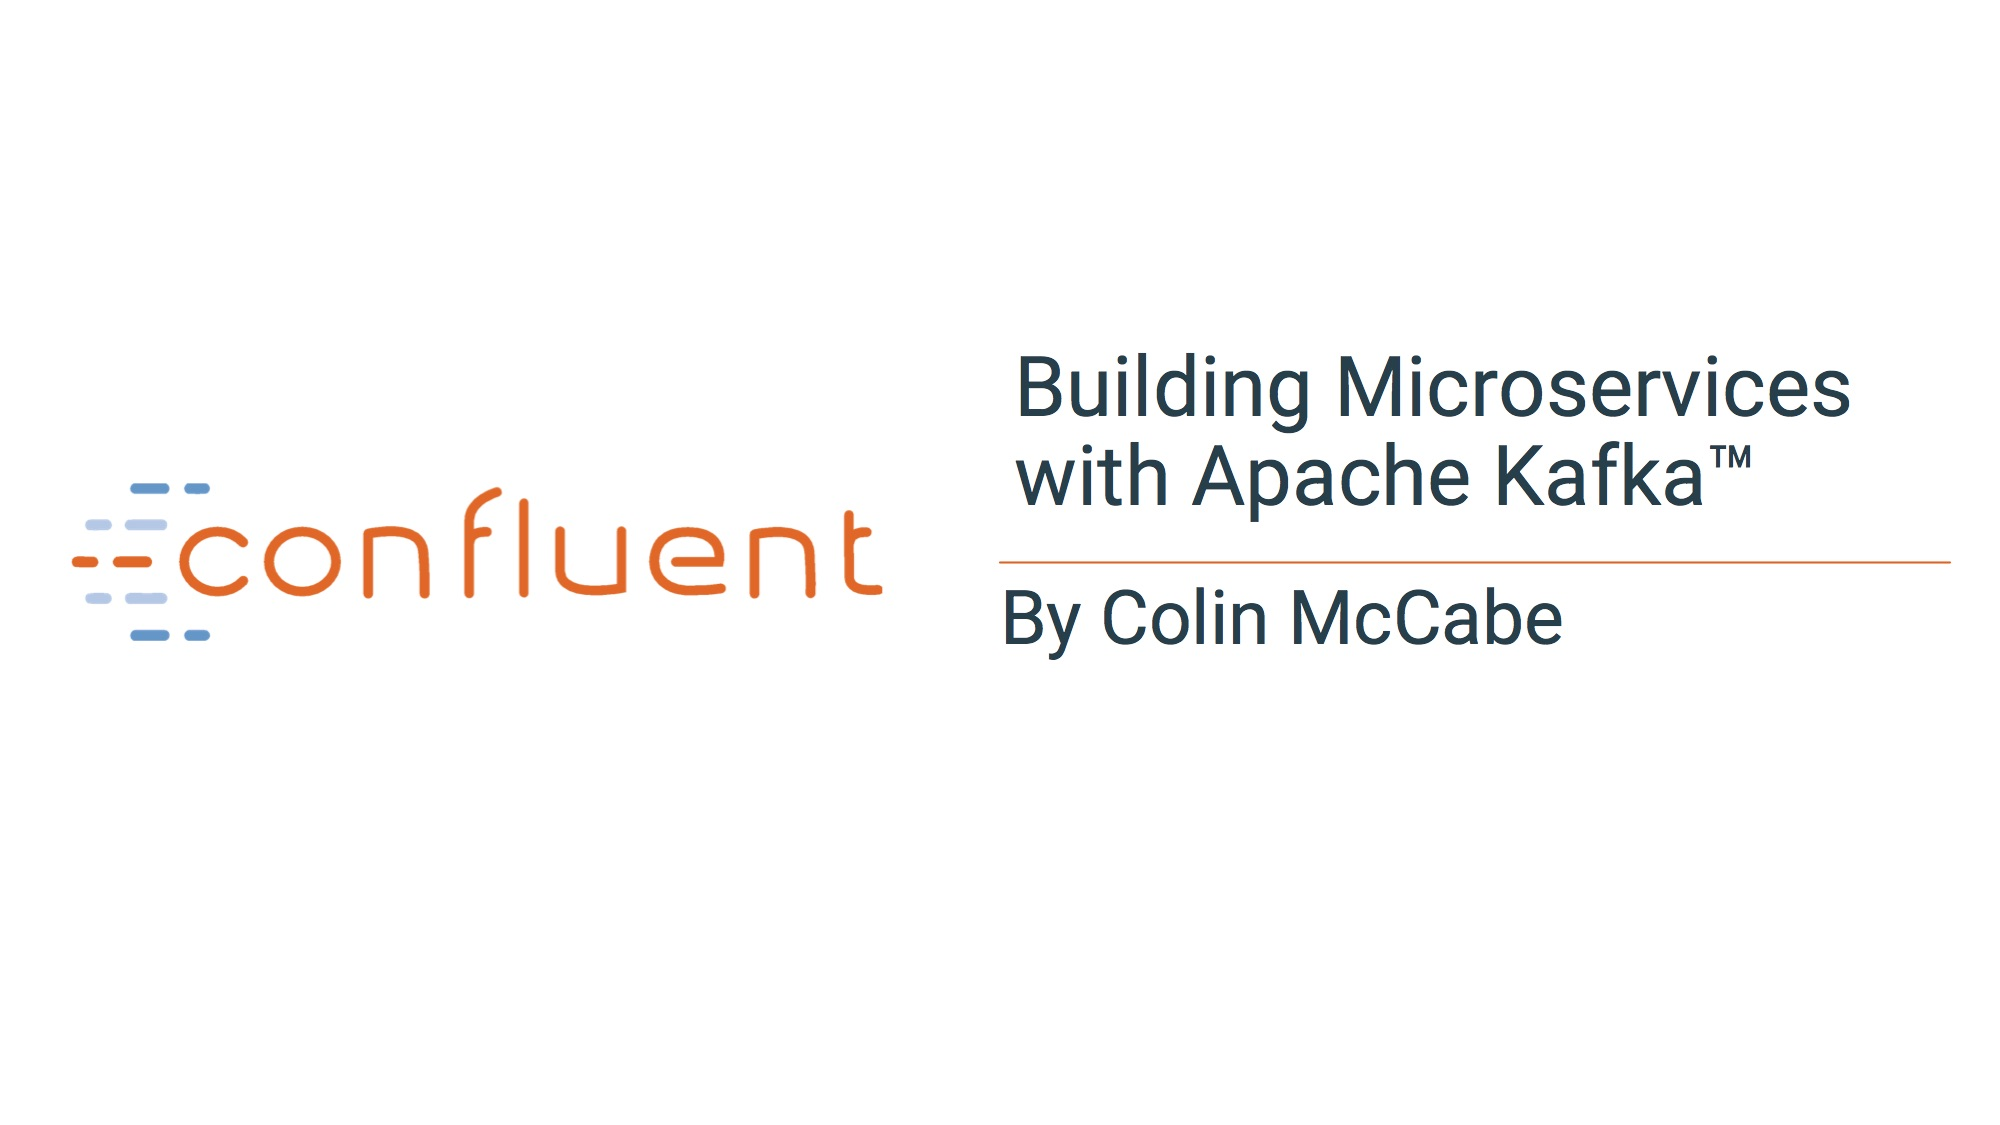 Building Microservices with Apache Kafka<sup>®</sup>